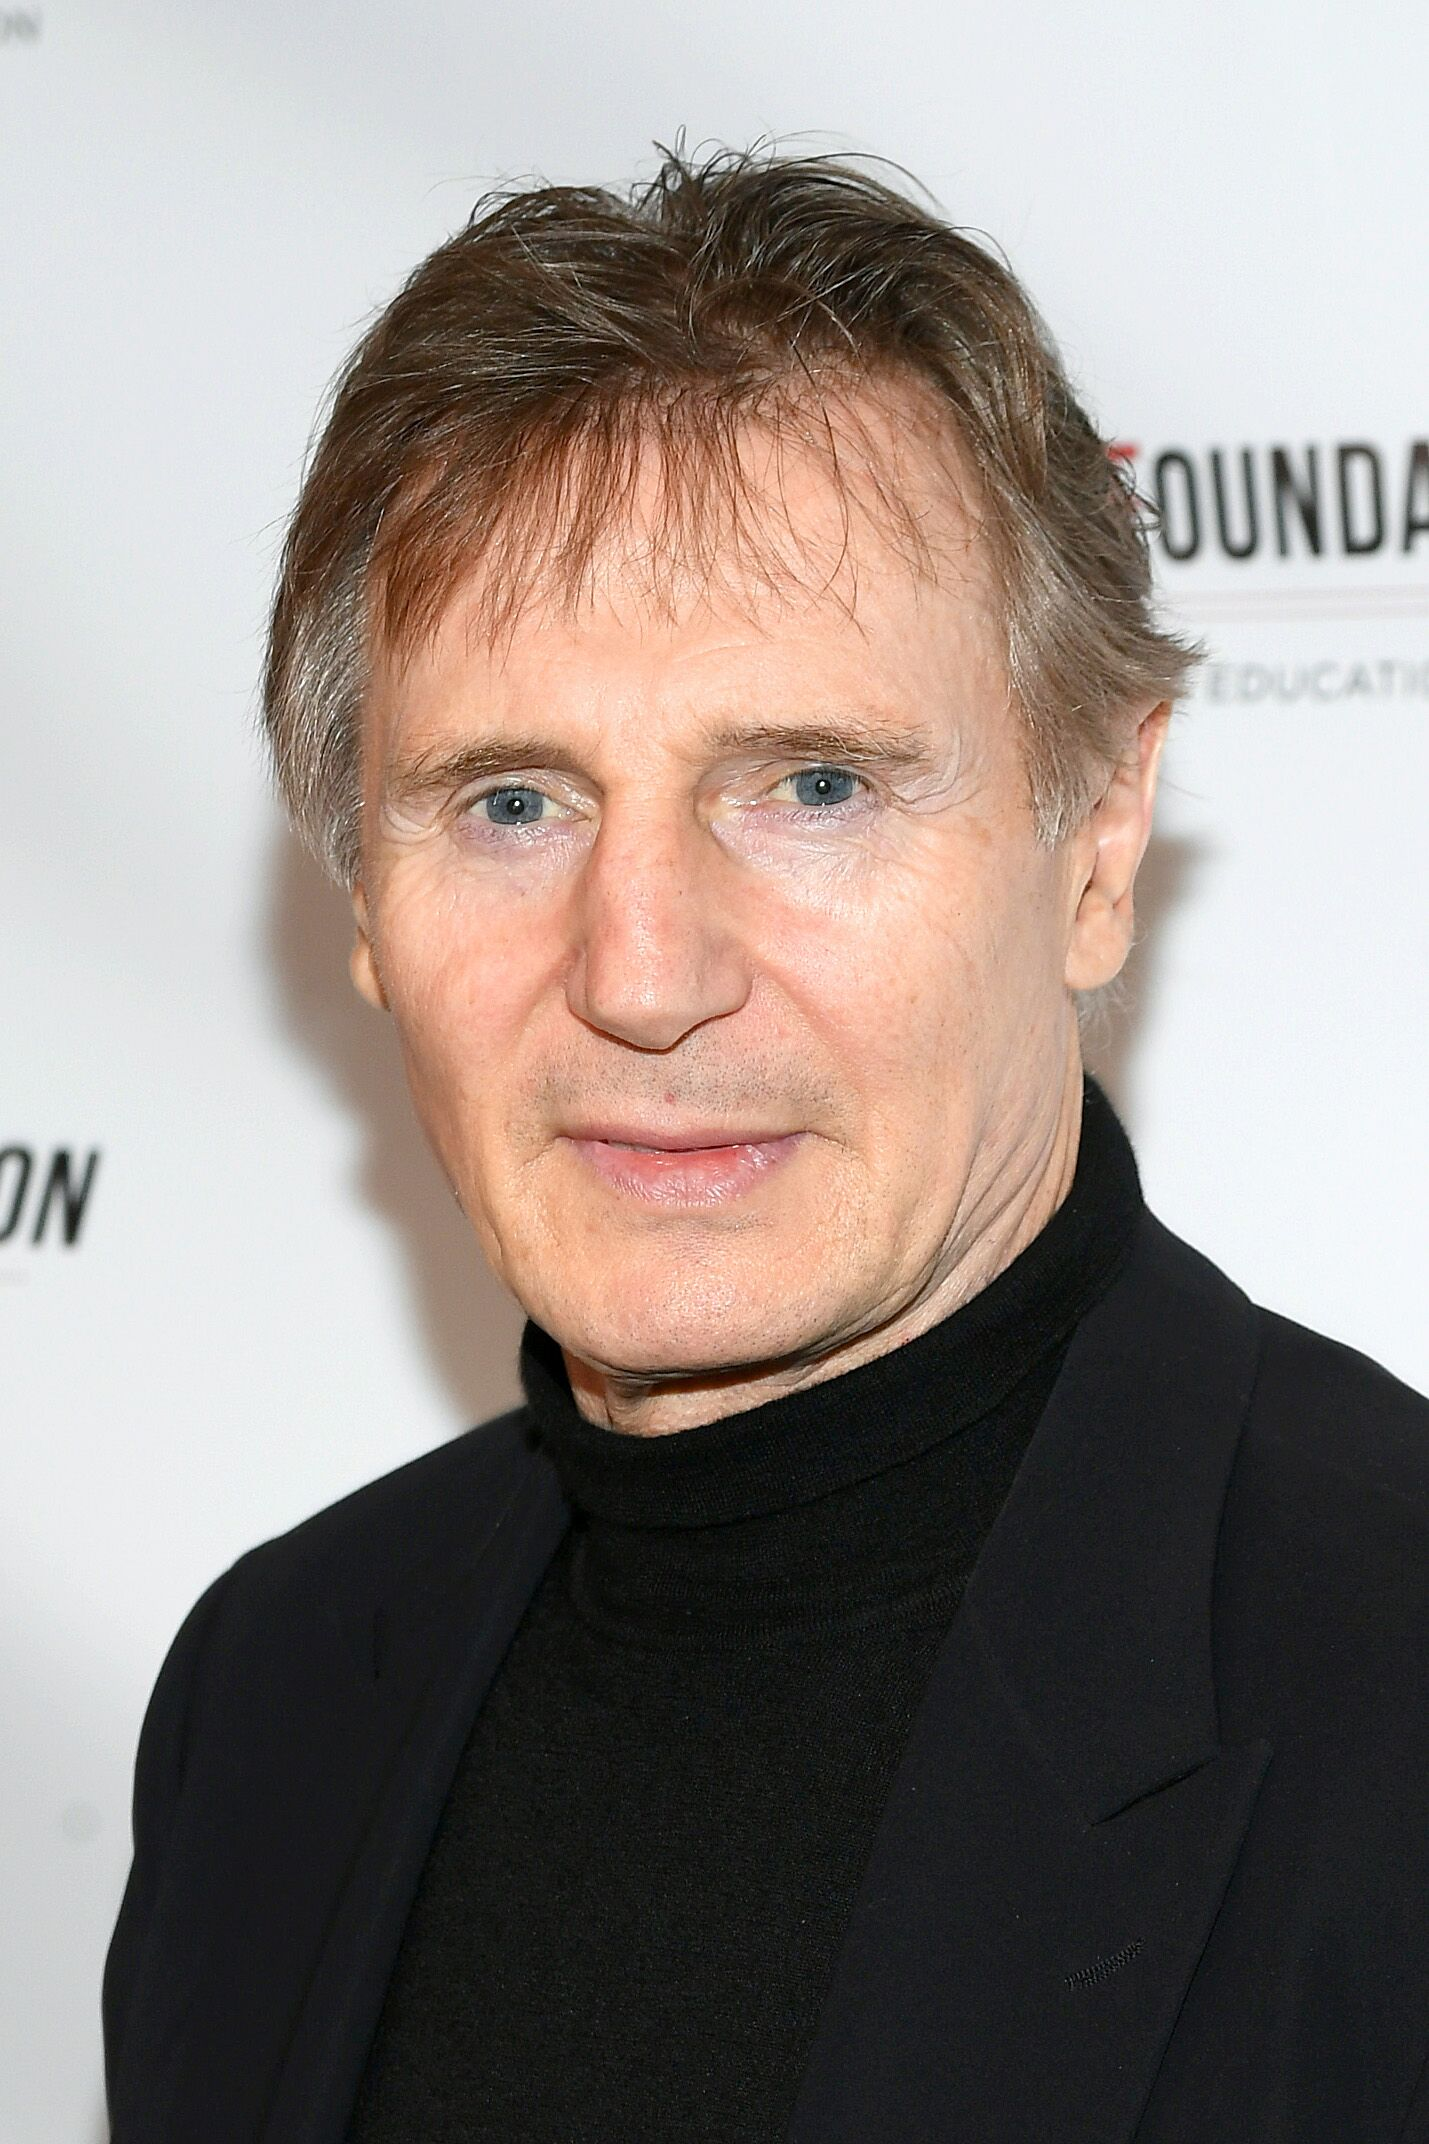 Liam Neeson attends the 2018 Arthur Miller Foundation Honors. | Source: Getty Images